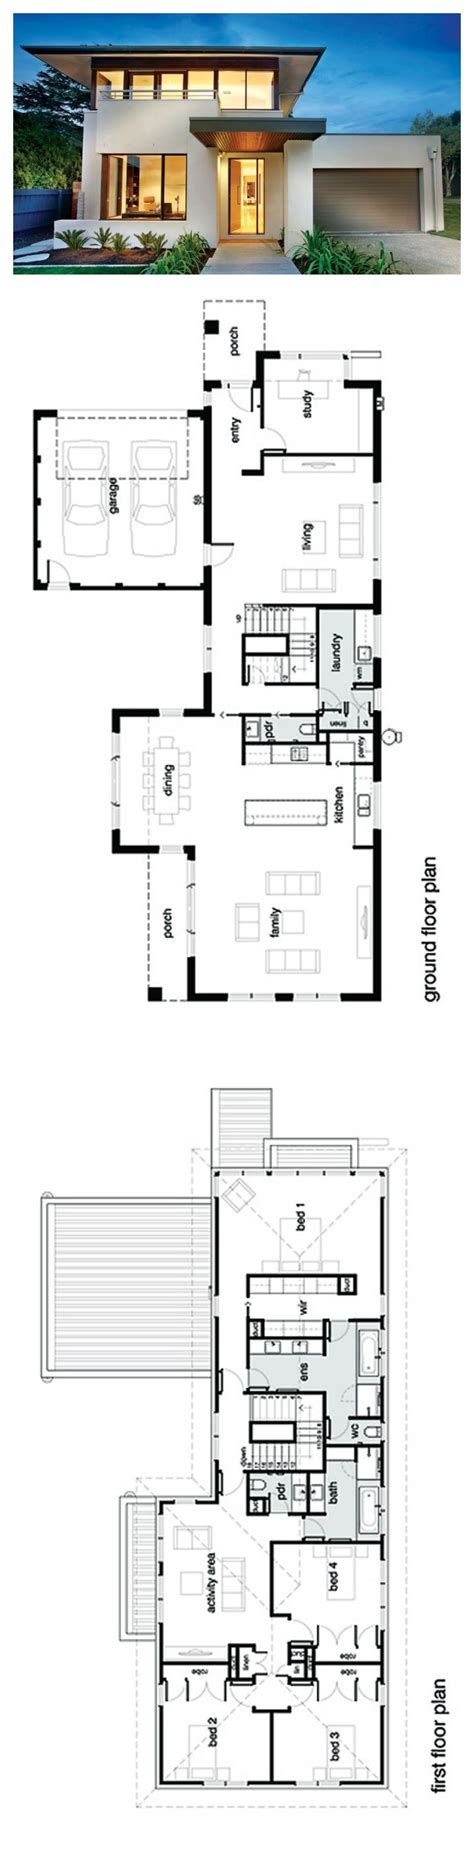 modern home design plans best 25 modern house plans ideas on